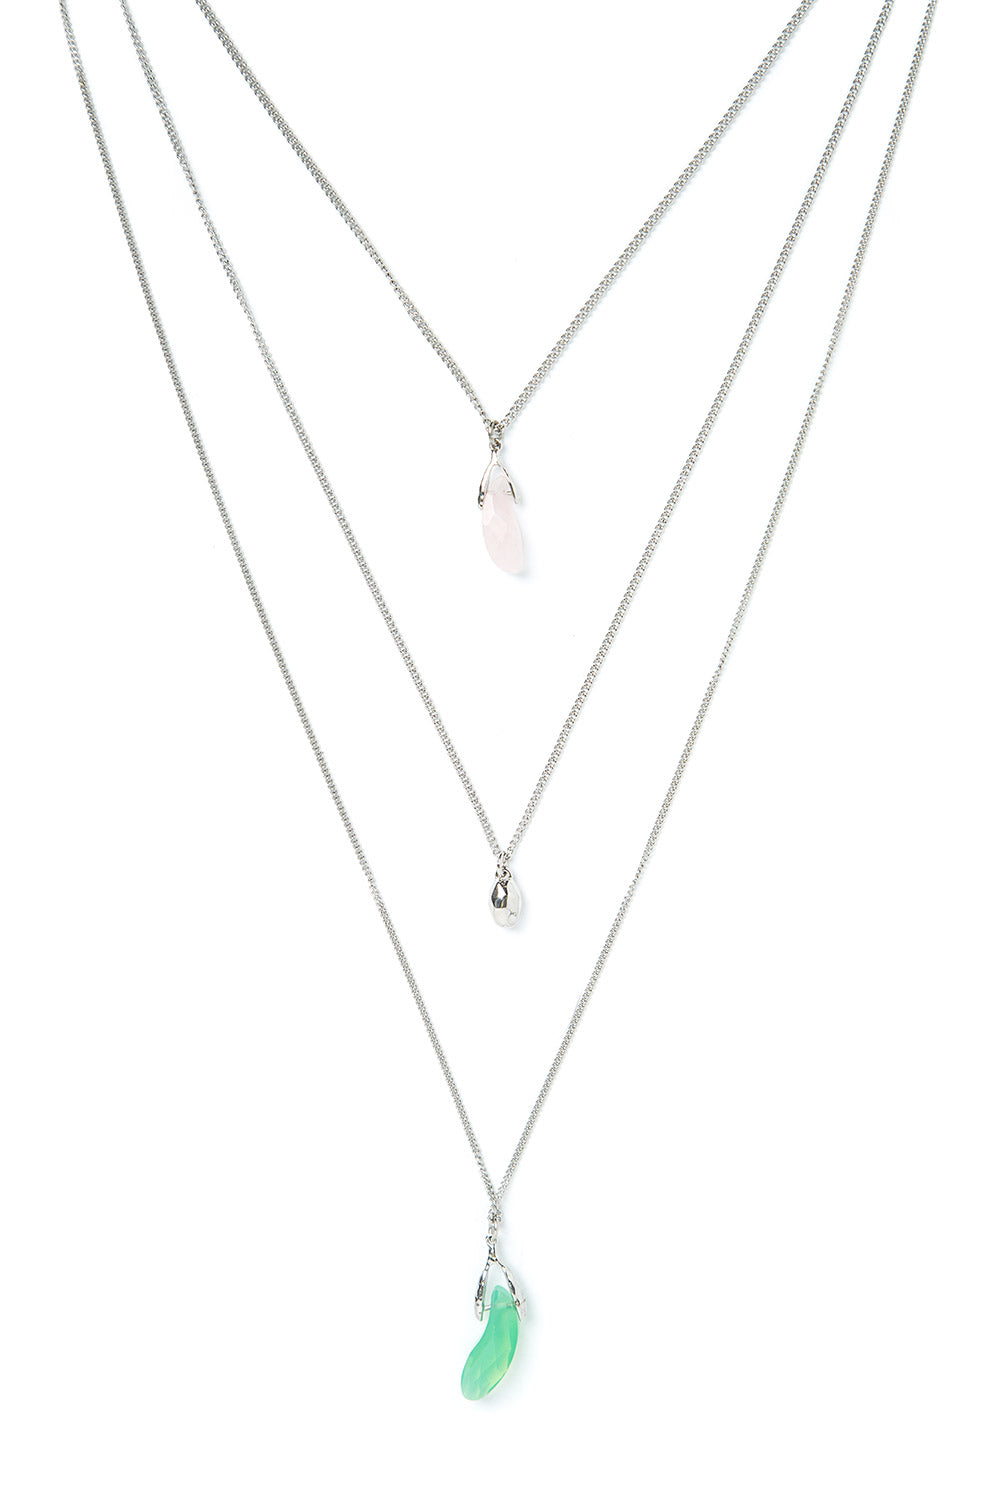 Type 2 Rose Quartz Necklace